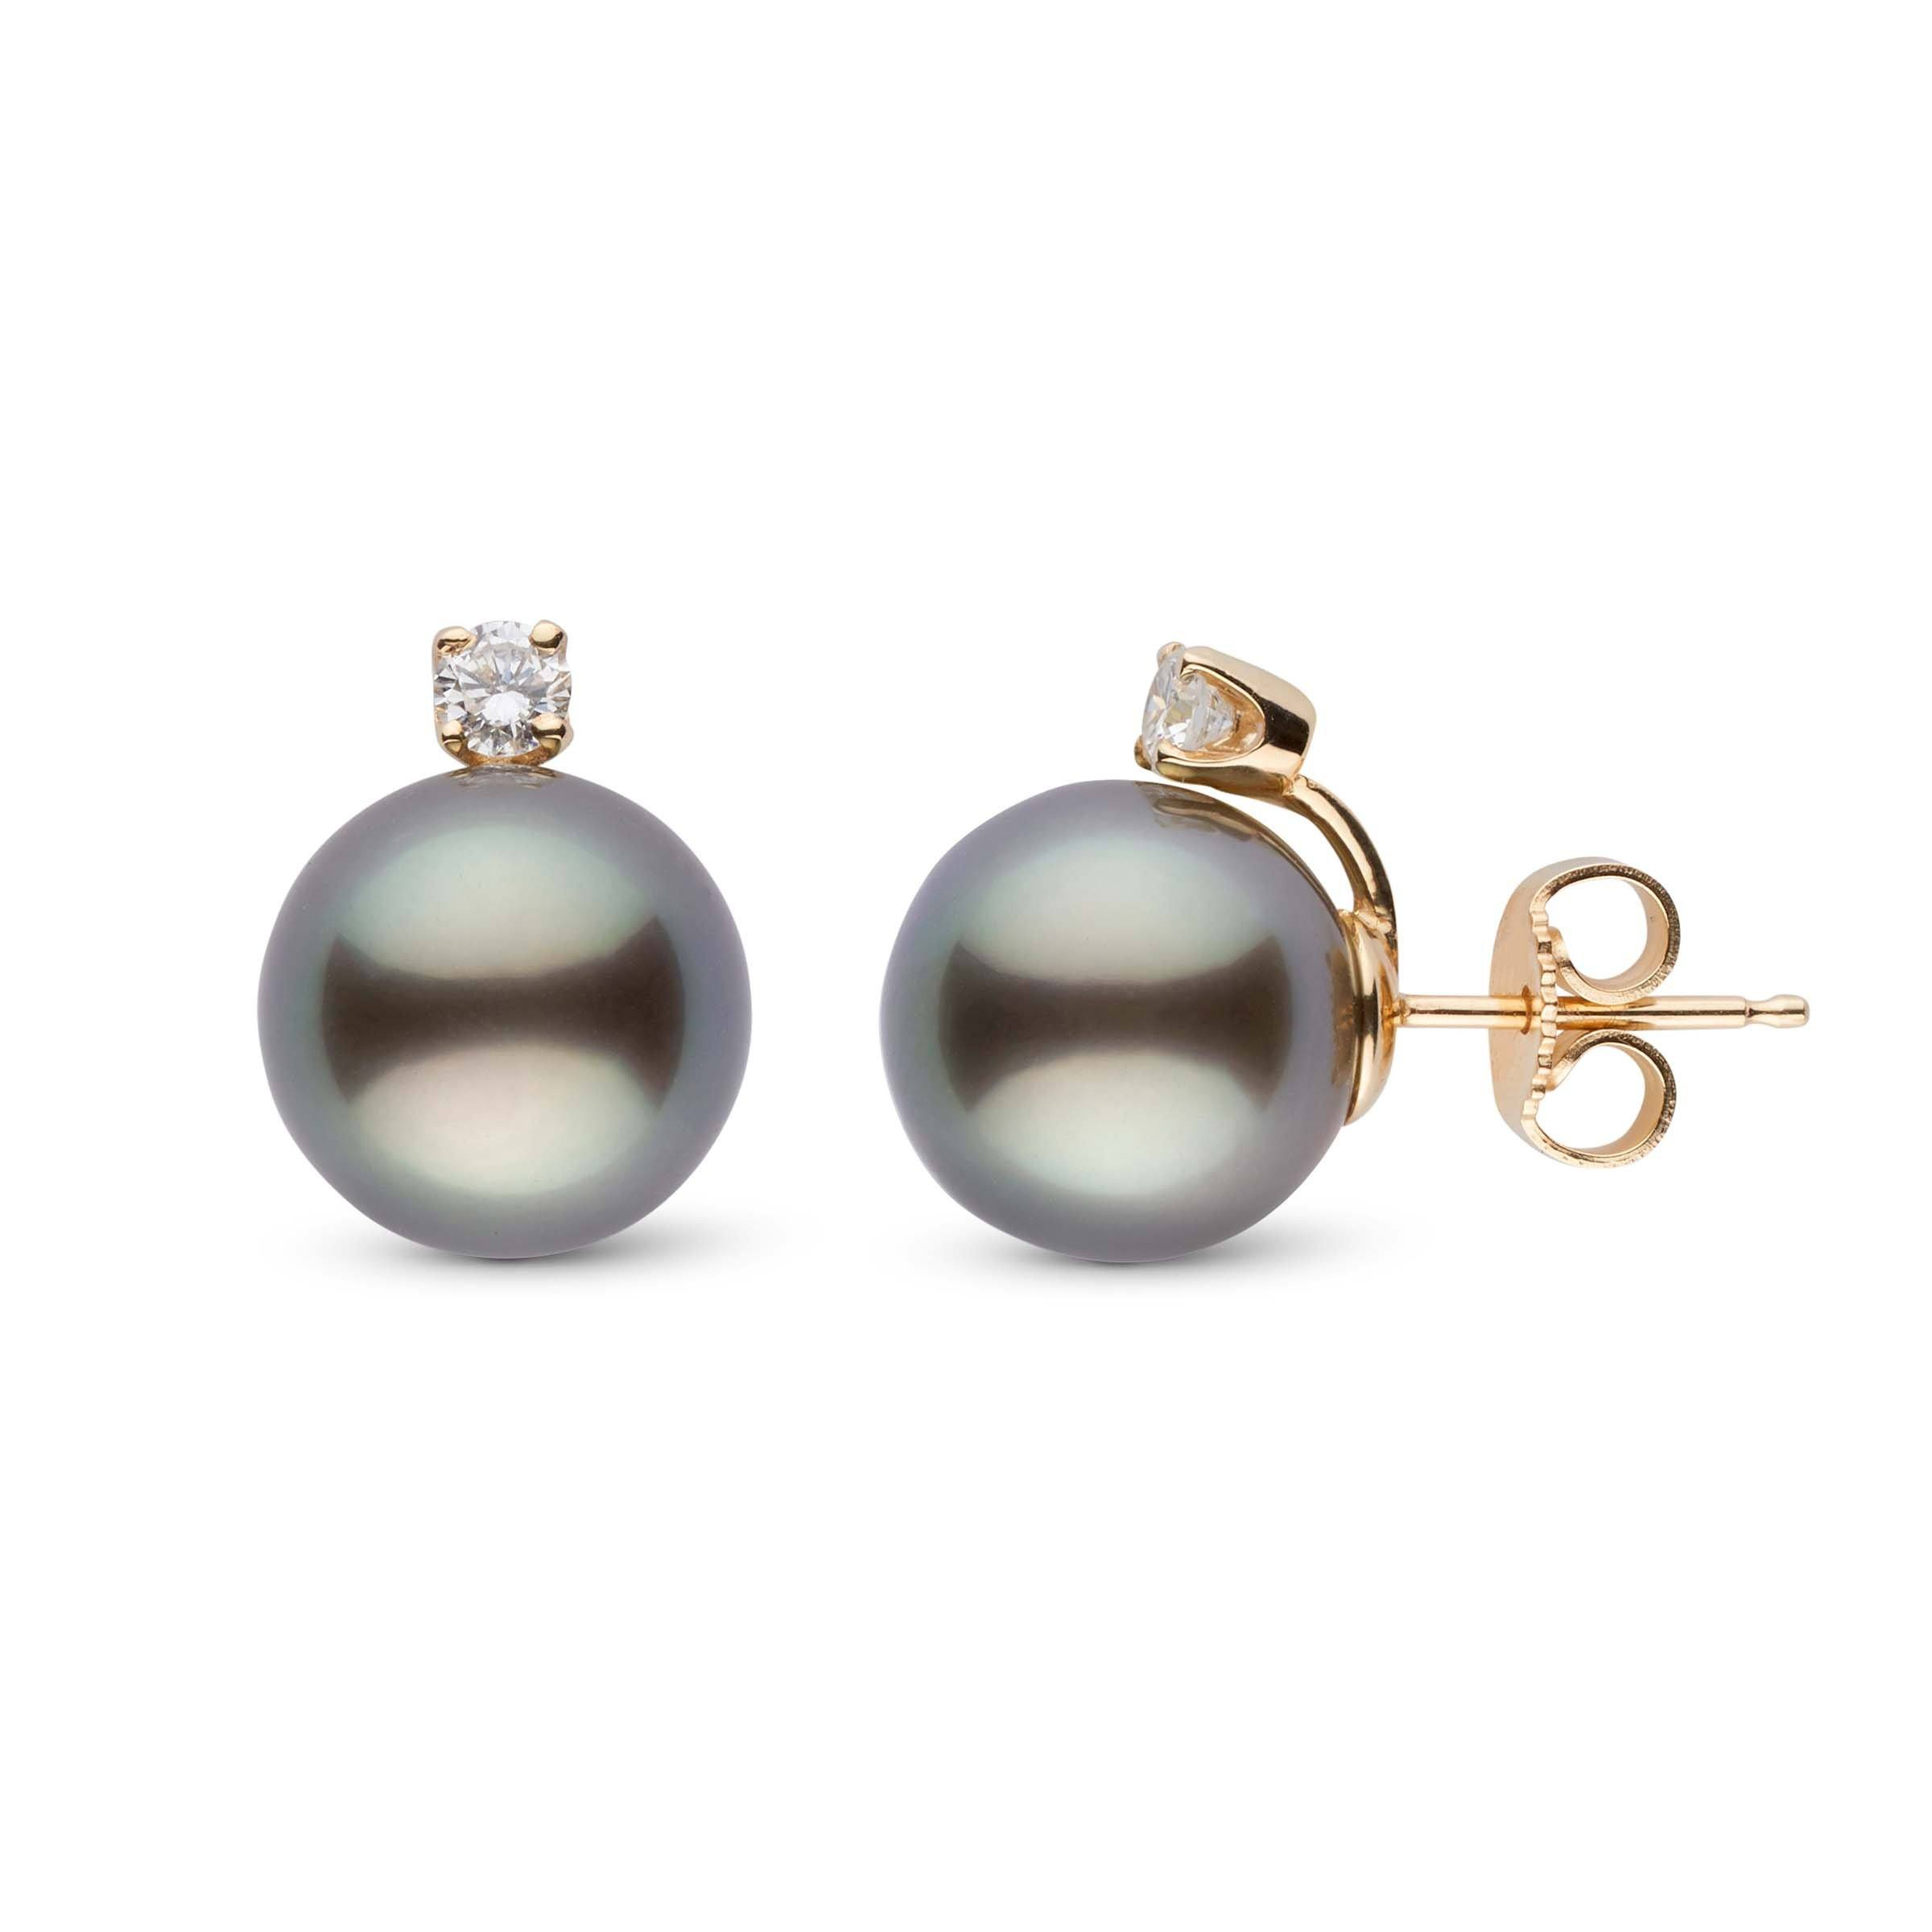 Starlight Collection 9.0-10.0 mm Tahitian Pearl & Diamond Stud Earrings